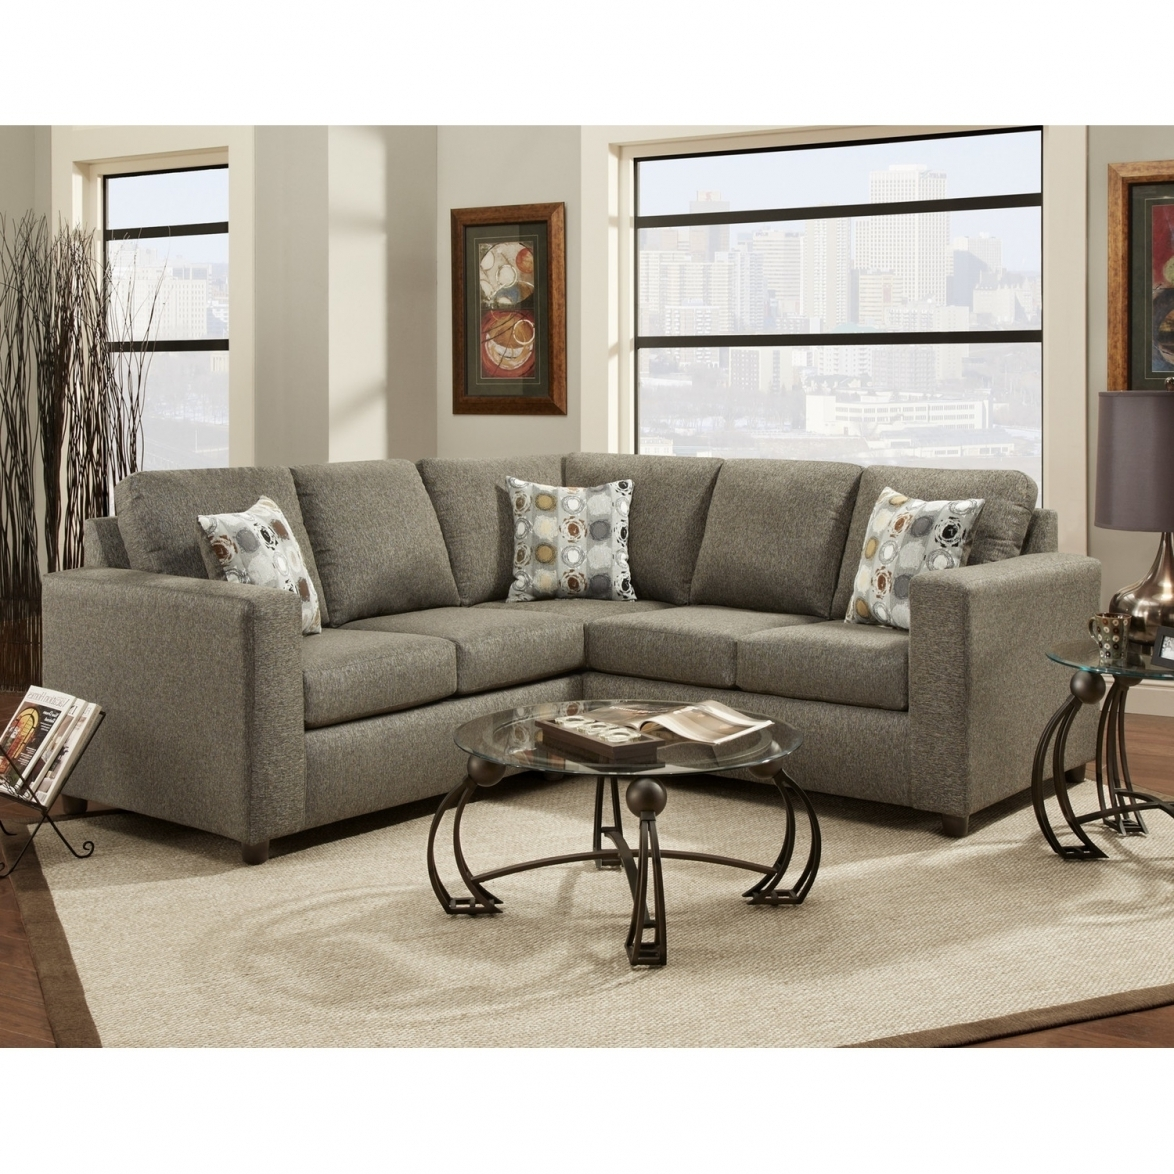 Sofa Ideas Jacksonville Fl Sectional Sofas Explore 6 of 10 Photos